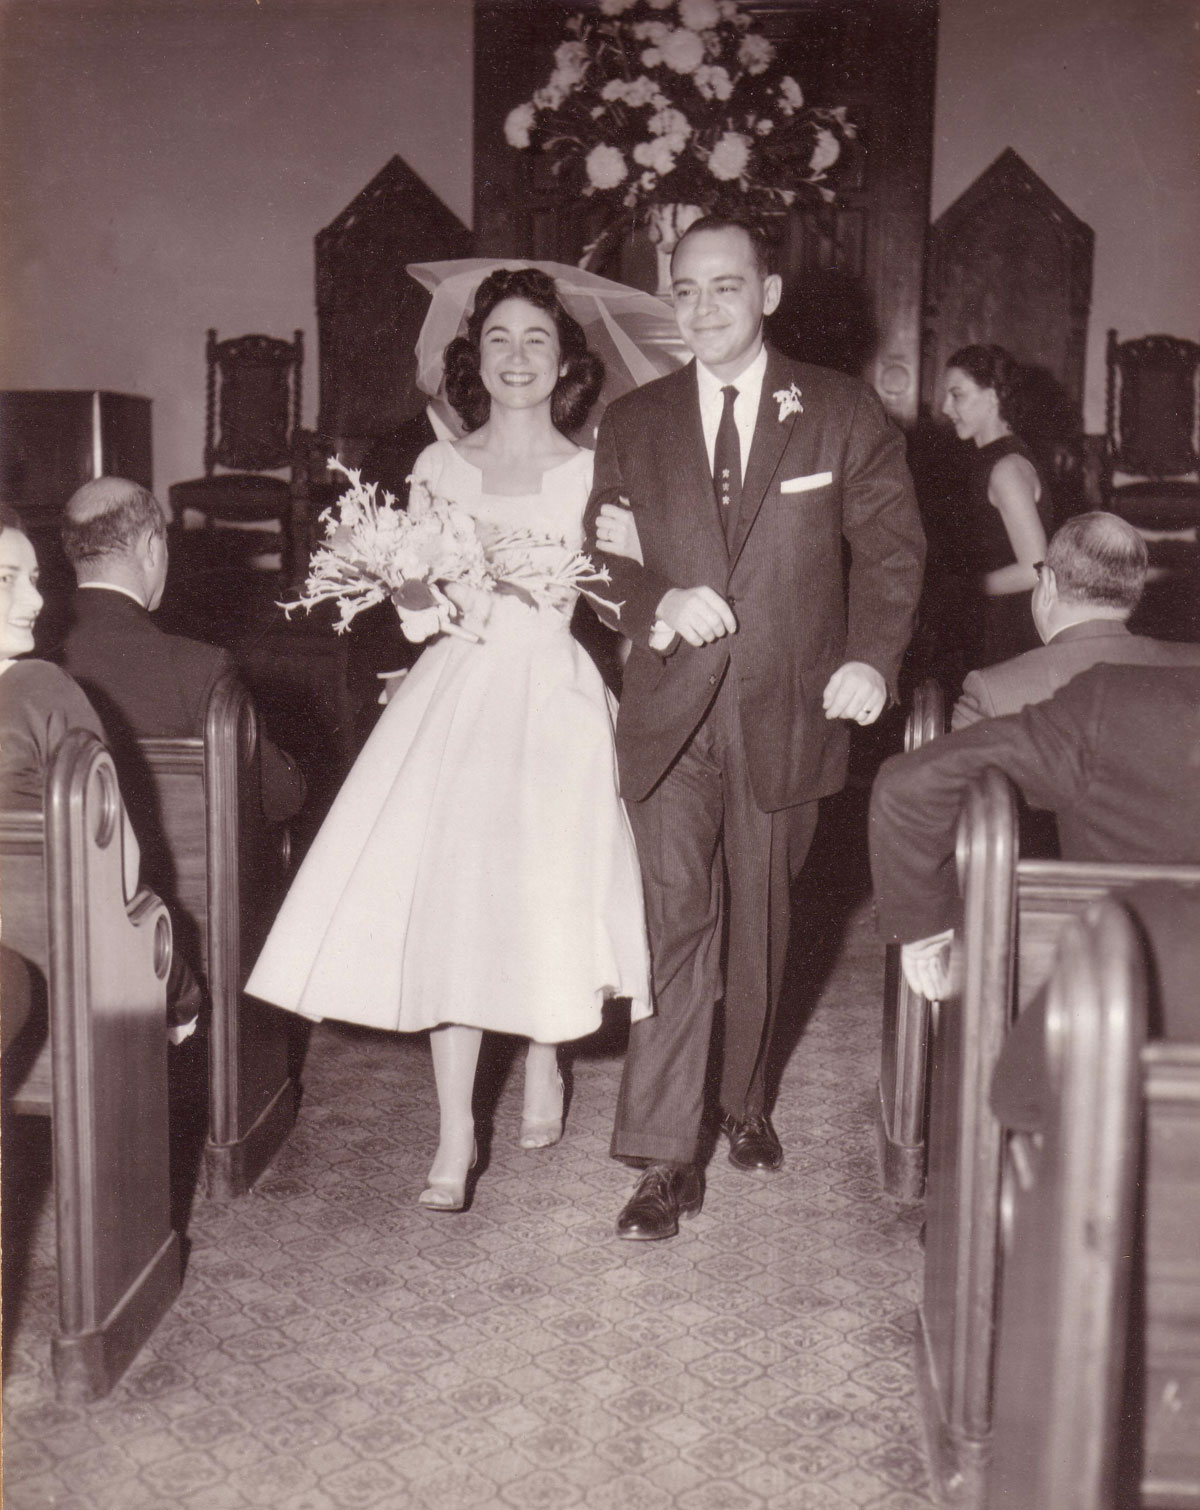 Wedding Day 1955